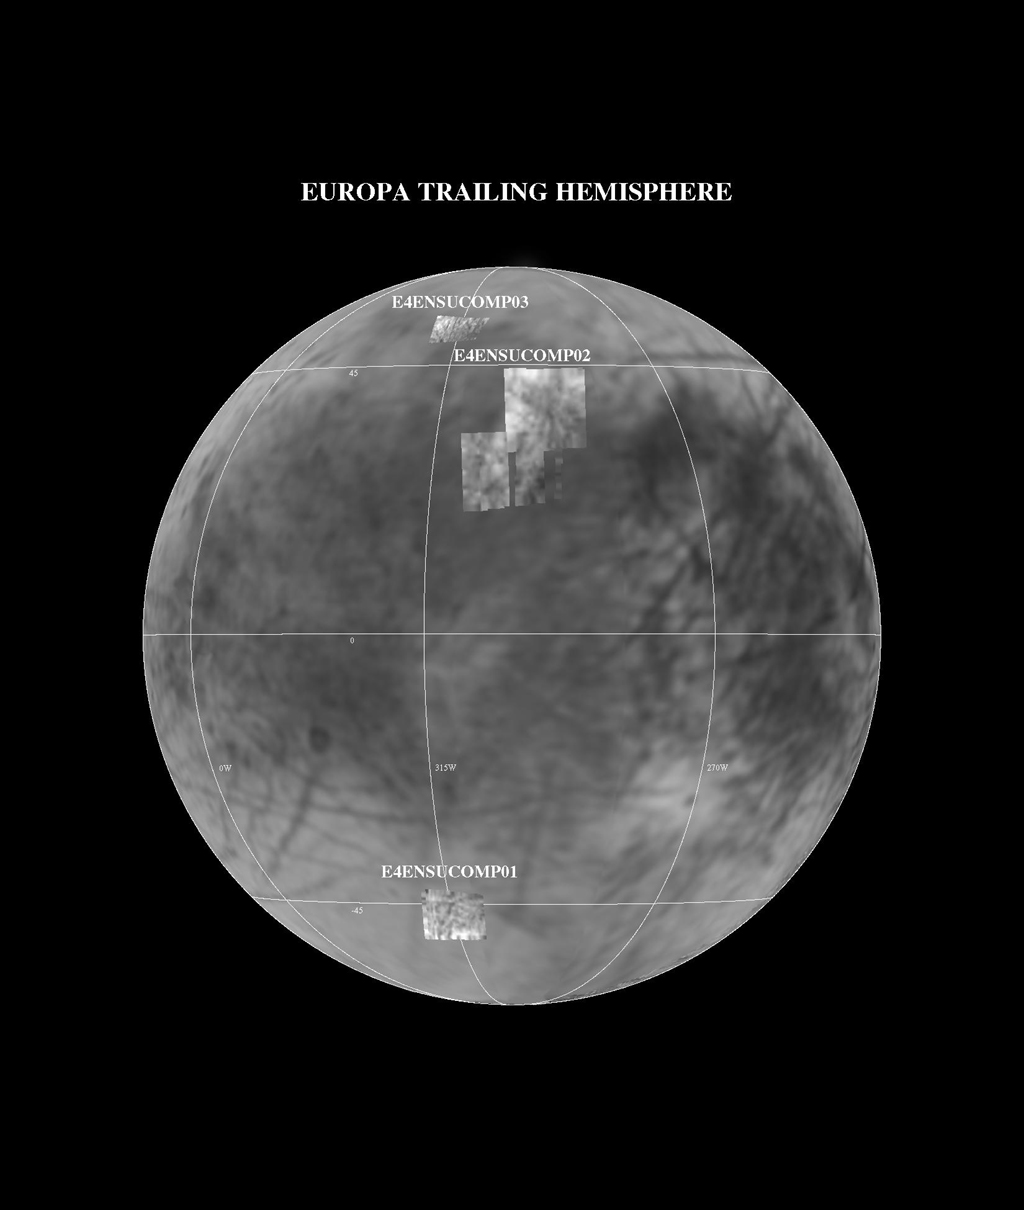 This image shows the Near Infrared Mapping Spectrometer (NIMS) observations of selected areas of Europa's trailing hemisphere during NASA's Galileo E4 encounter on 19 December 1996.